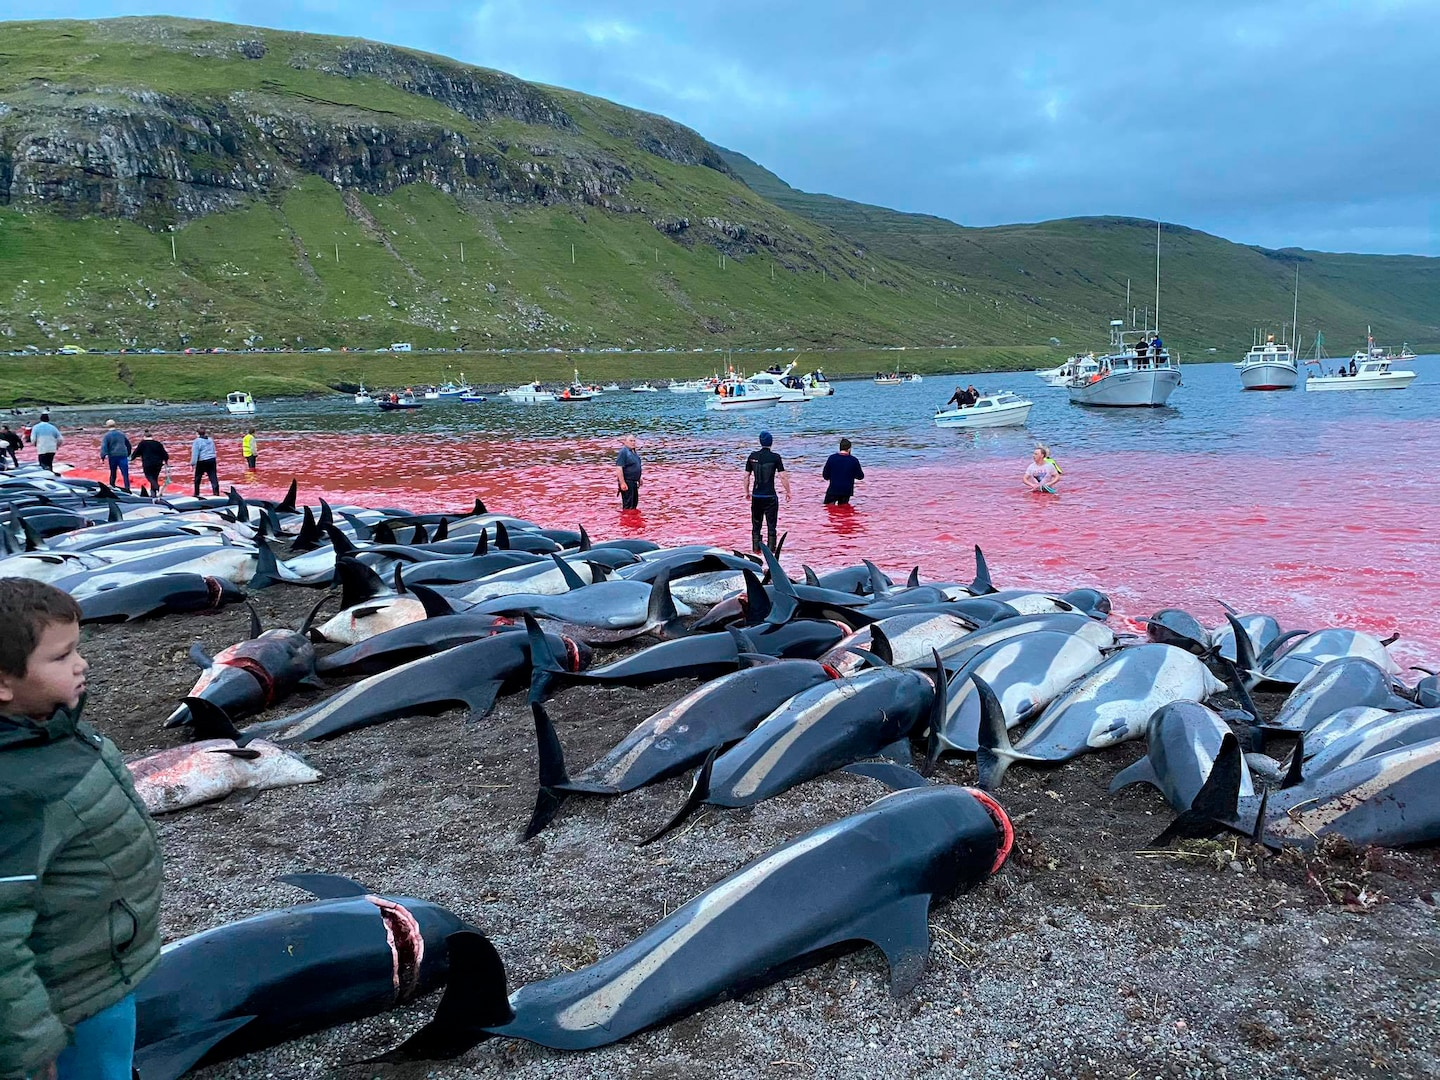 Slaughter of nearly 1500 dolphins sparks outcry over traditional hunt in Faroe Islands